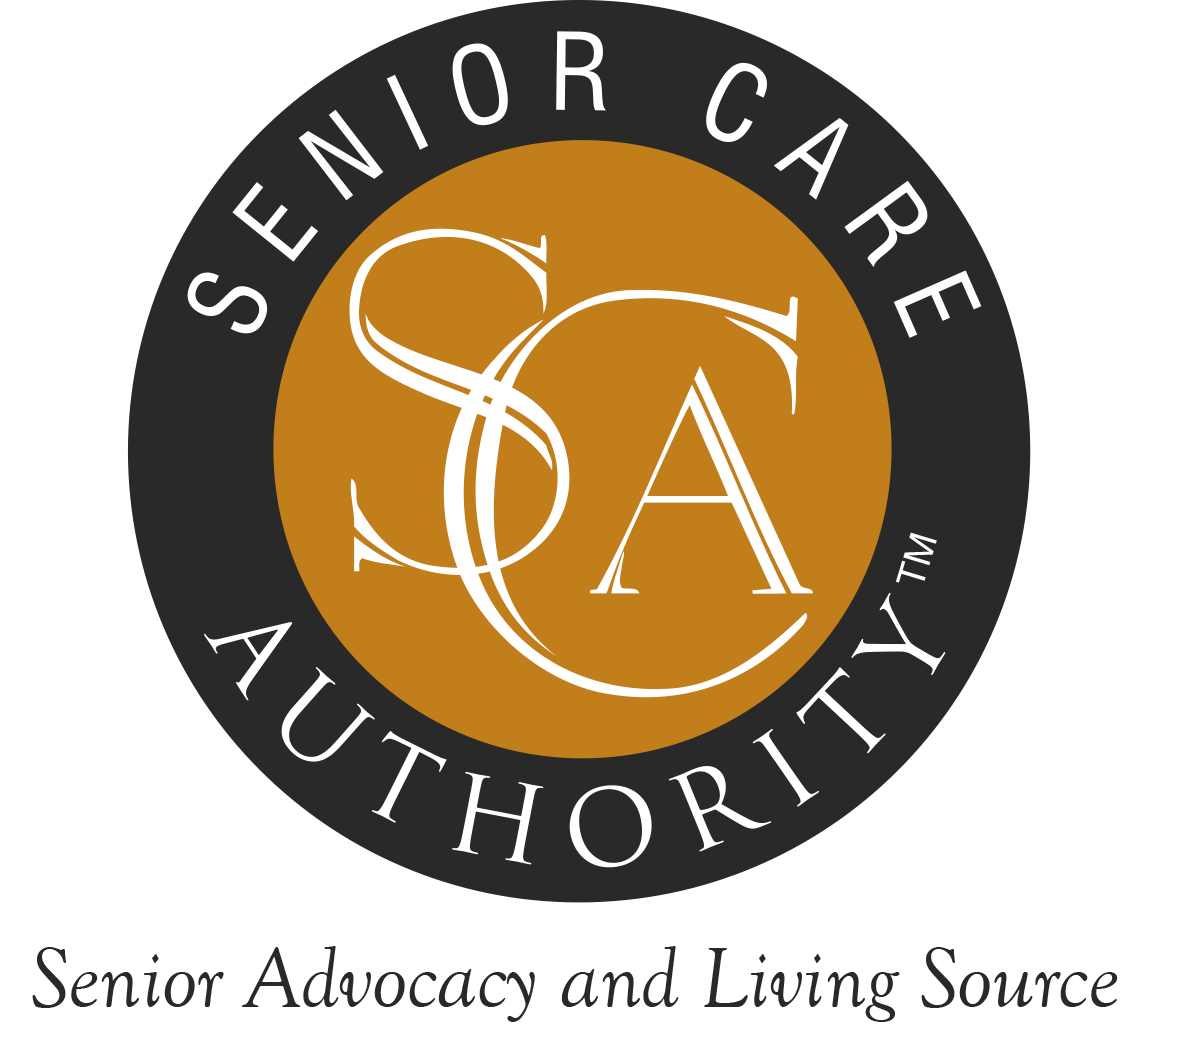 Senior Care Authority St. Paul Metro